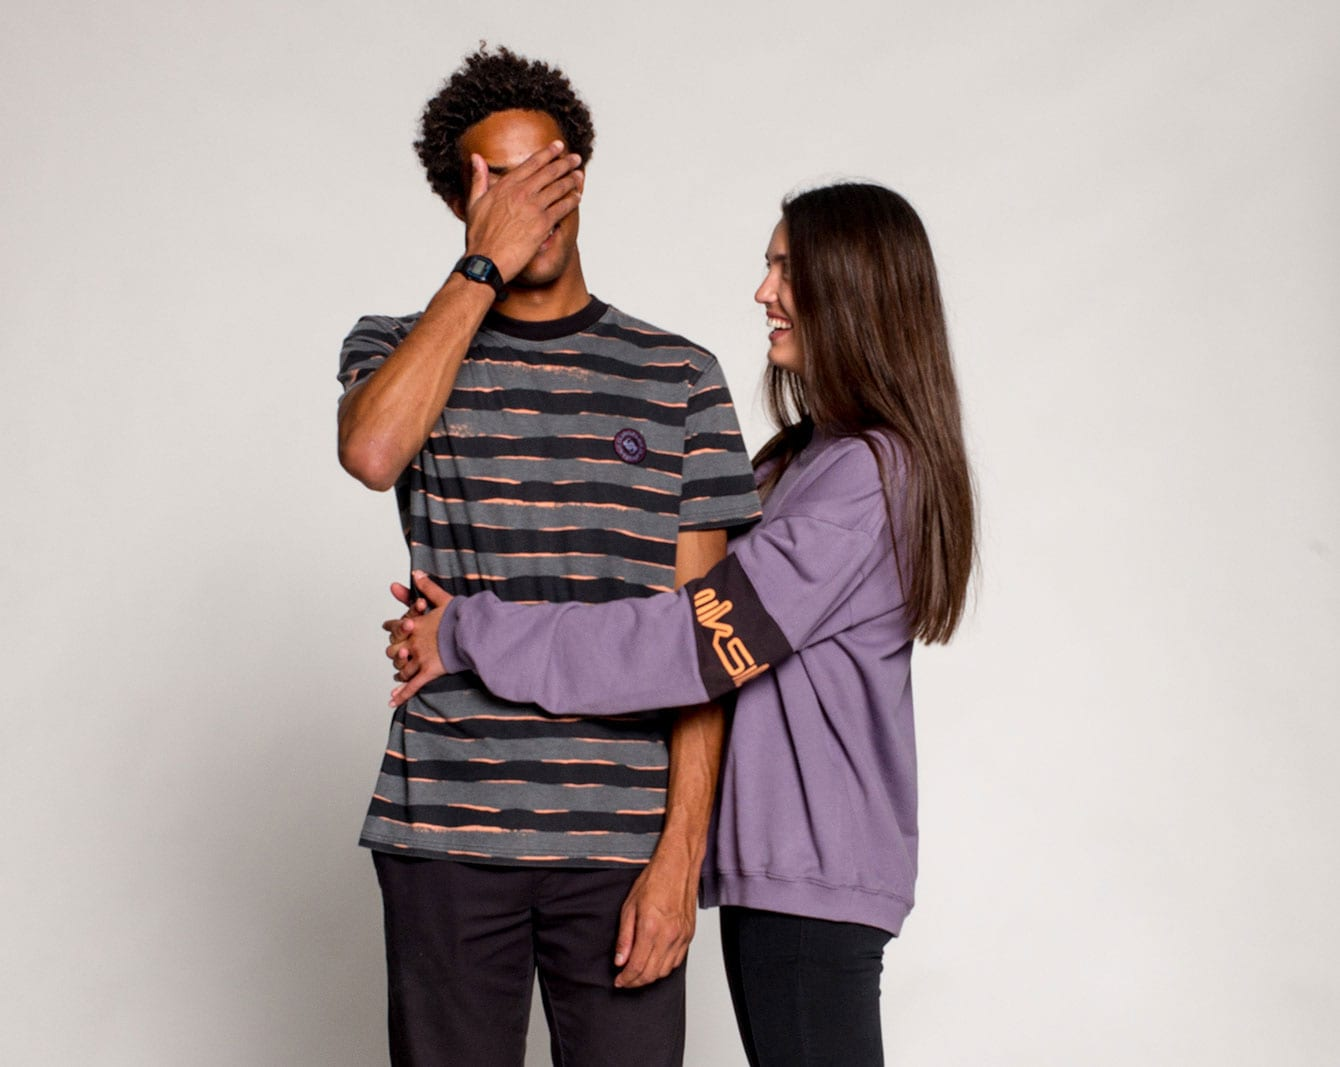 Man covering his face wearing a grey tshirt with black stripes hugged by girl wearing a purple sweater